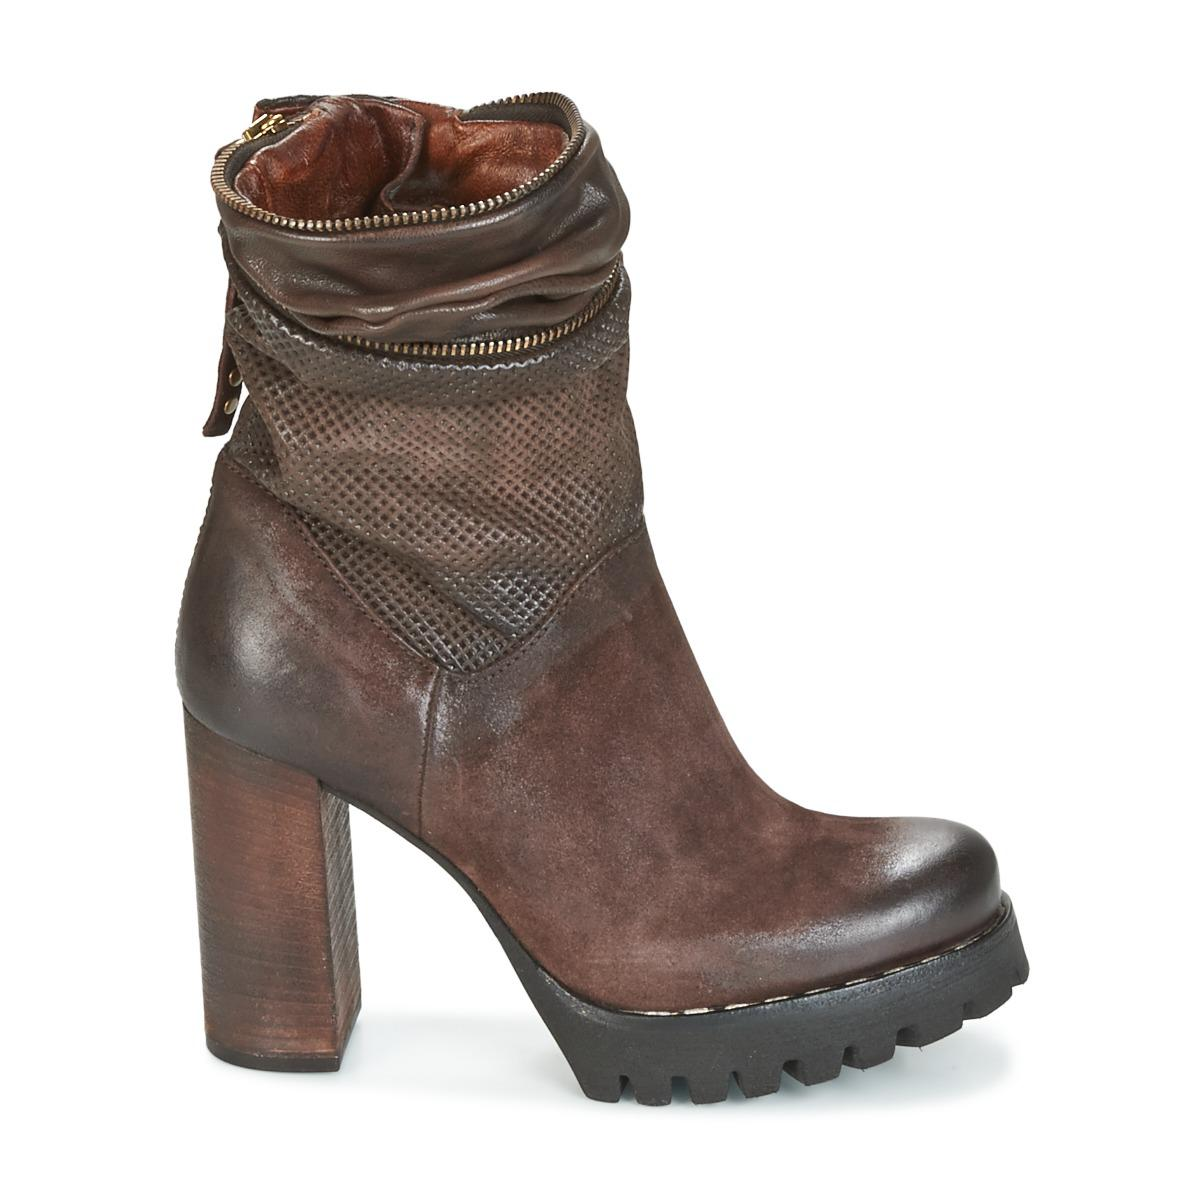 Official Site Airstep / A.S.98 BLOC ZIP women's Low Ankle Boots in Buy Cheap Huge Surprise Visa Payment Cheap Online New And Fashion nnVkPoY0